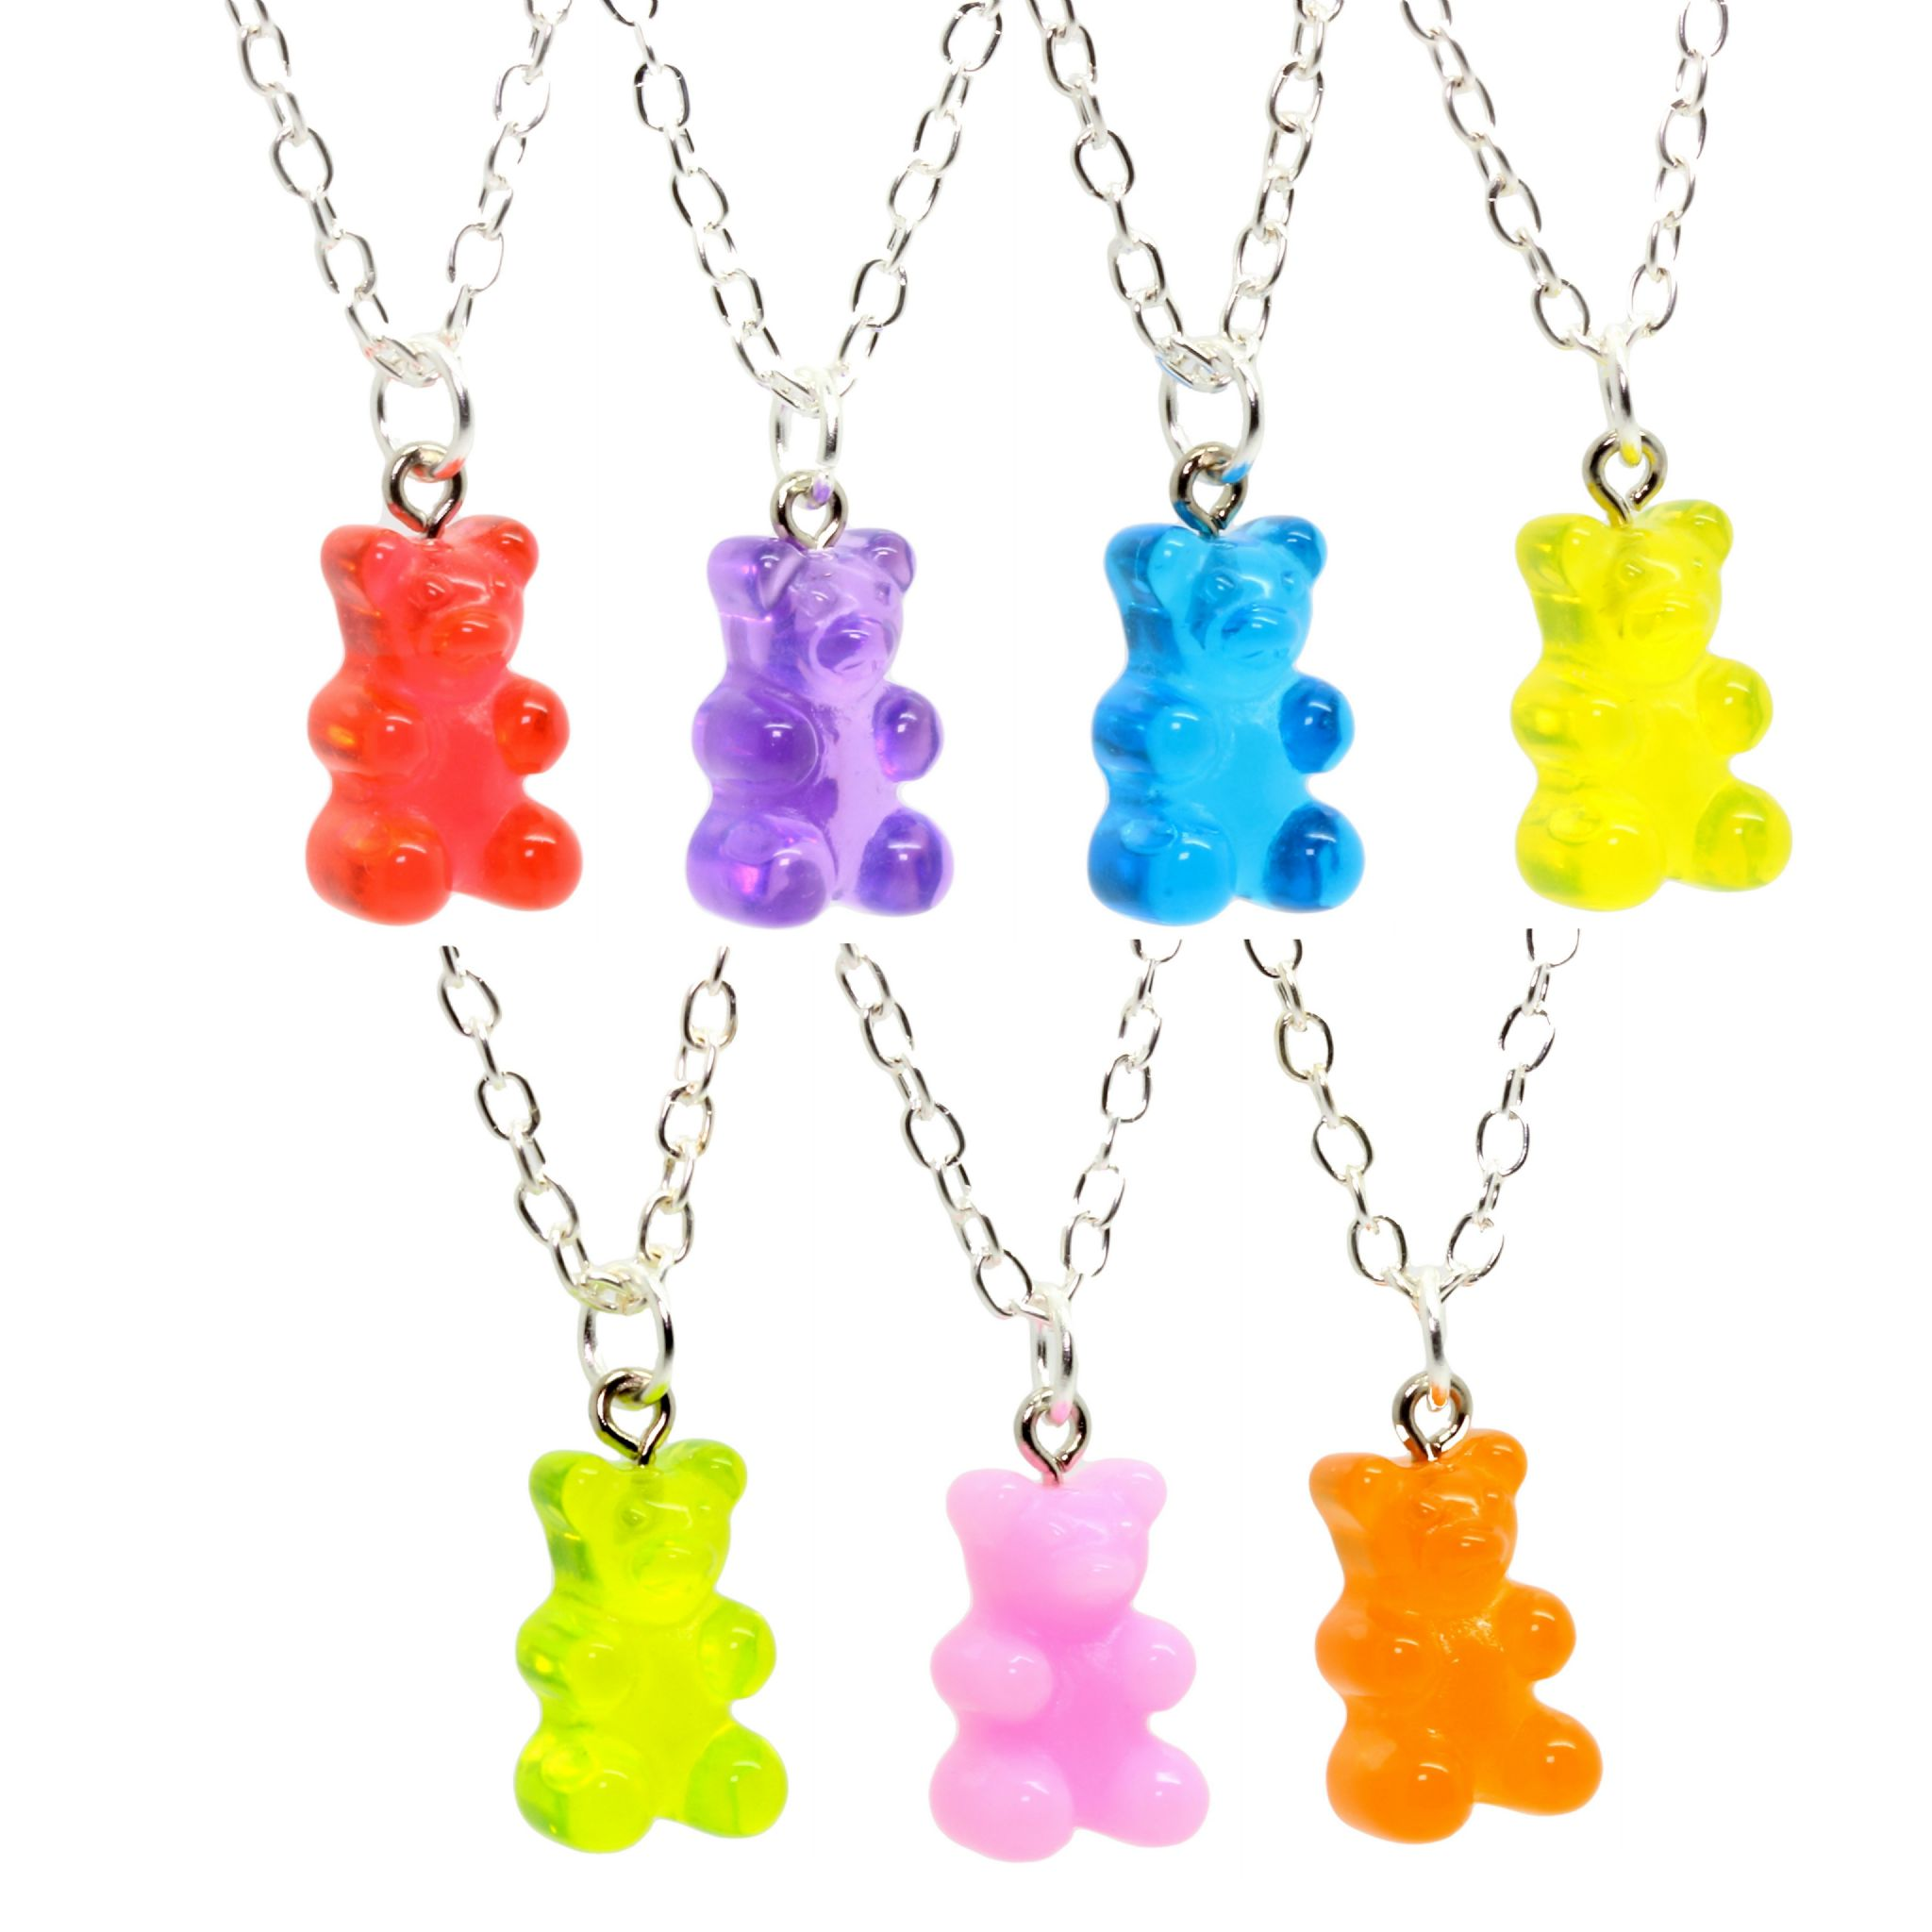 FizzyButton Gifts Set of 5 Translucent Jelly Gummy Bear Necklaces Colours as Shown for Girls Party Goody Bags